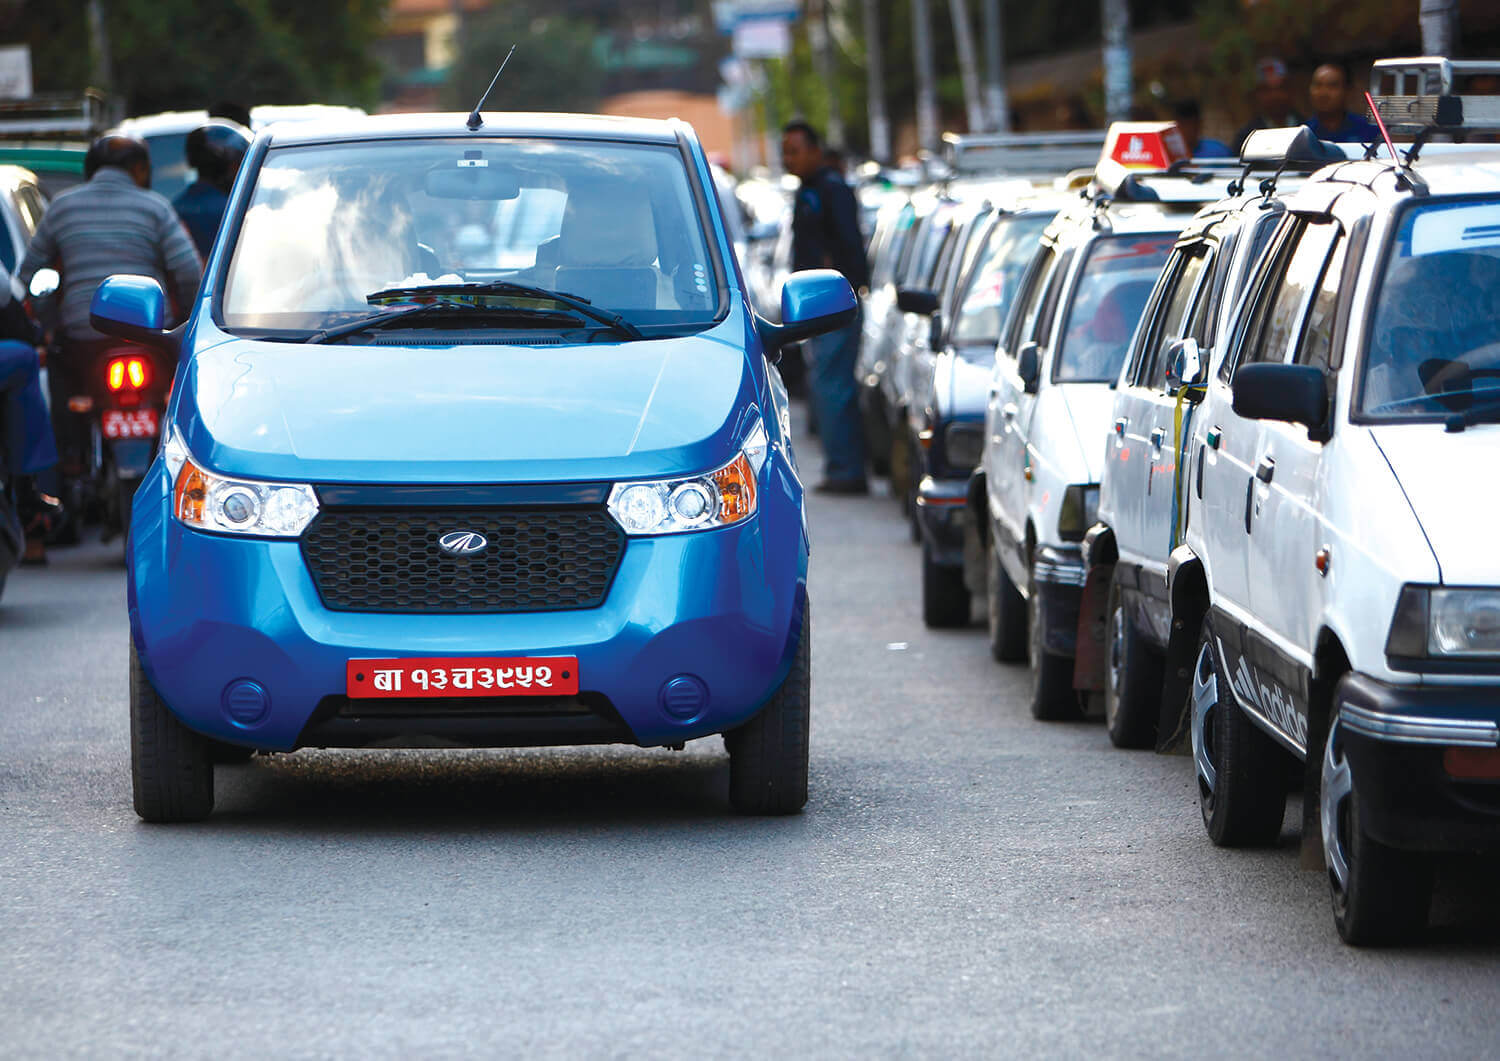 Nepali Times | Nepal's electric transport future is here